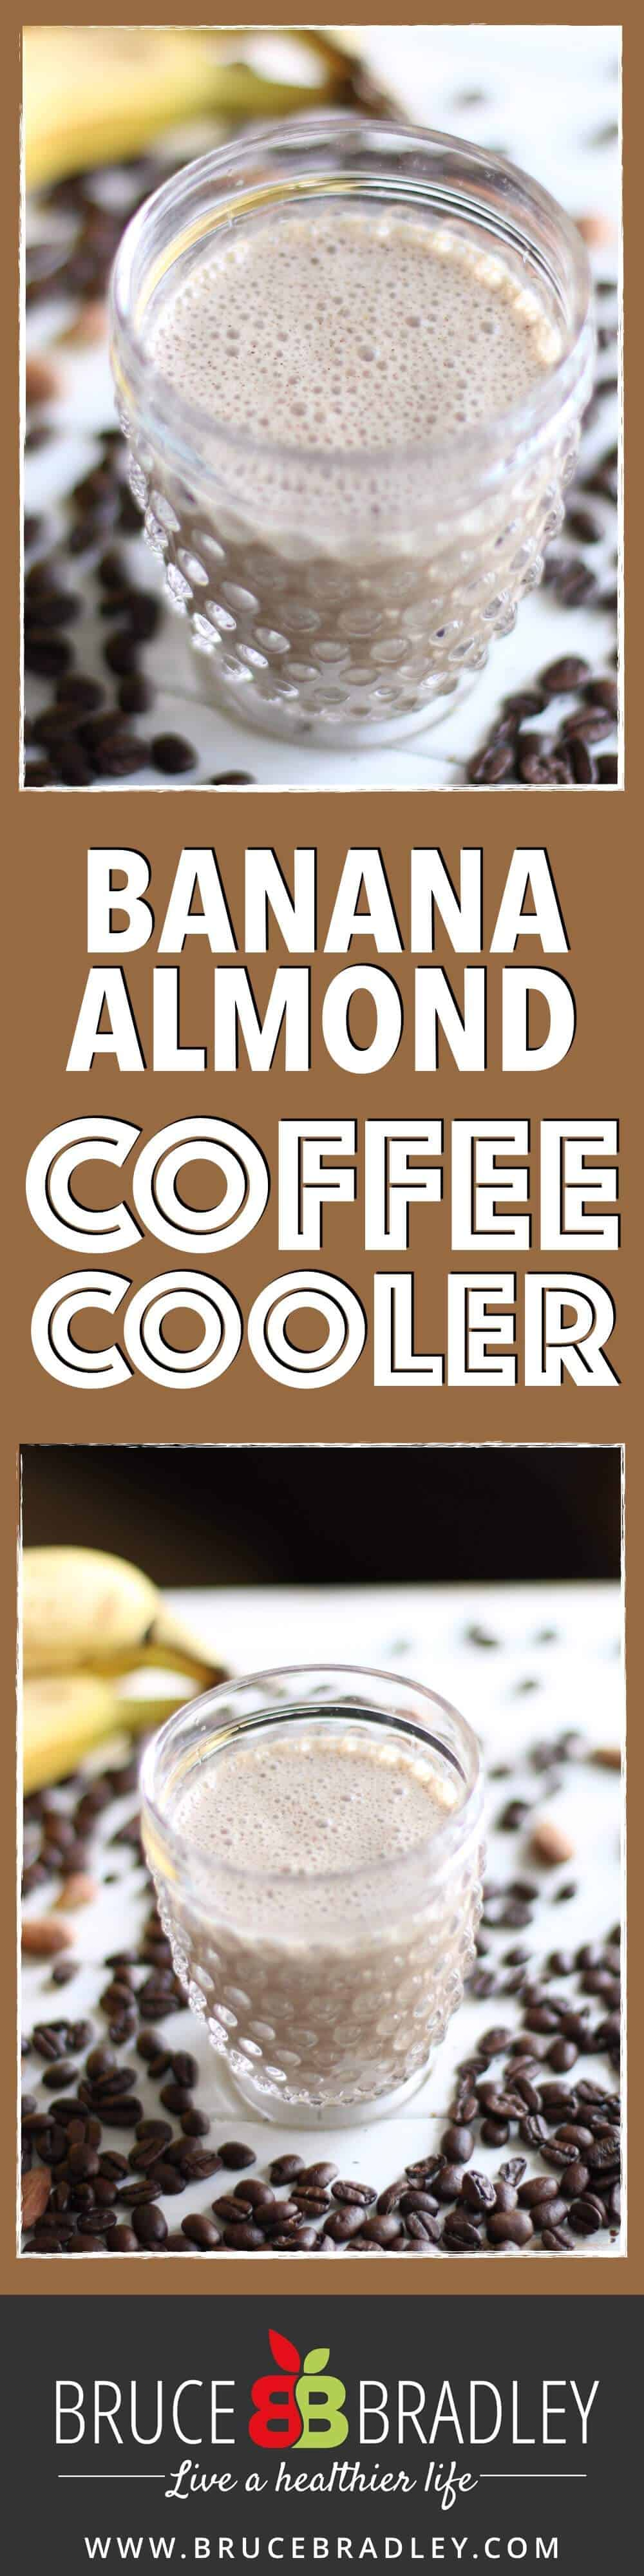 This Banana Almond Coffee Cooler is the perfect summer drink to cool you down, and it's made with real ingredients and no added sugars!